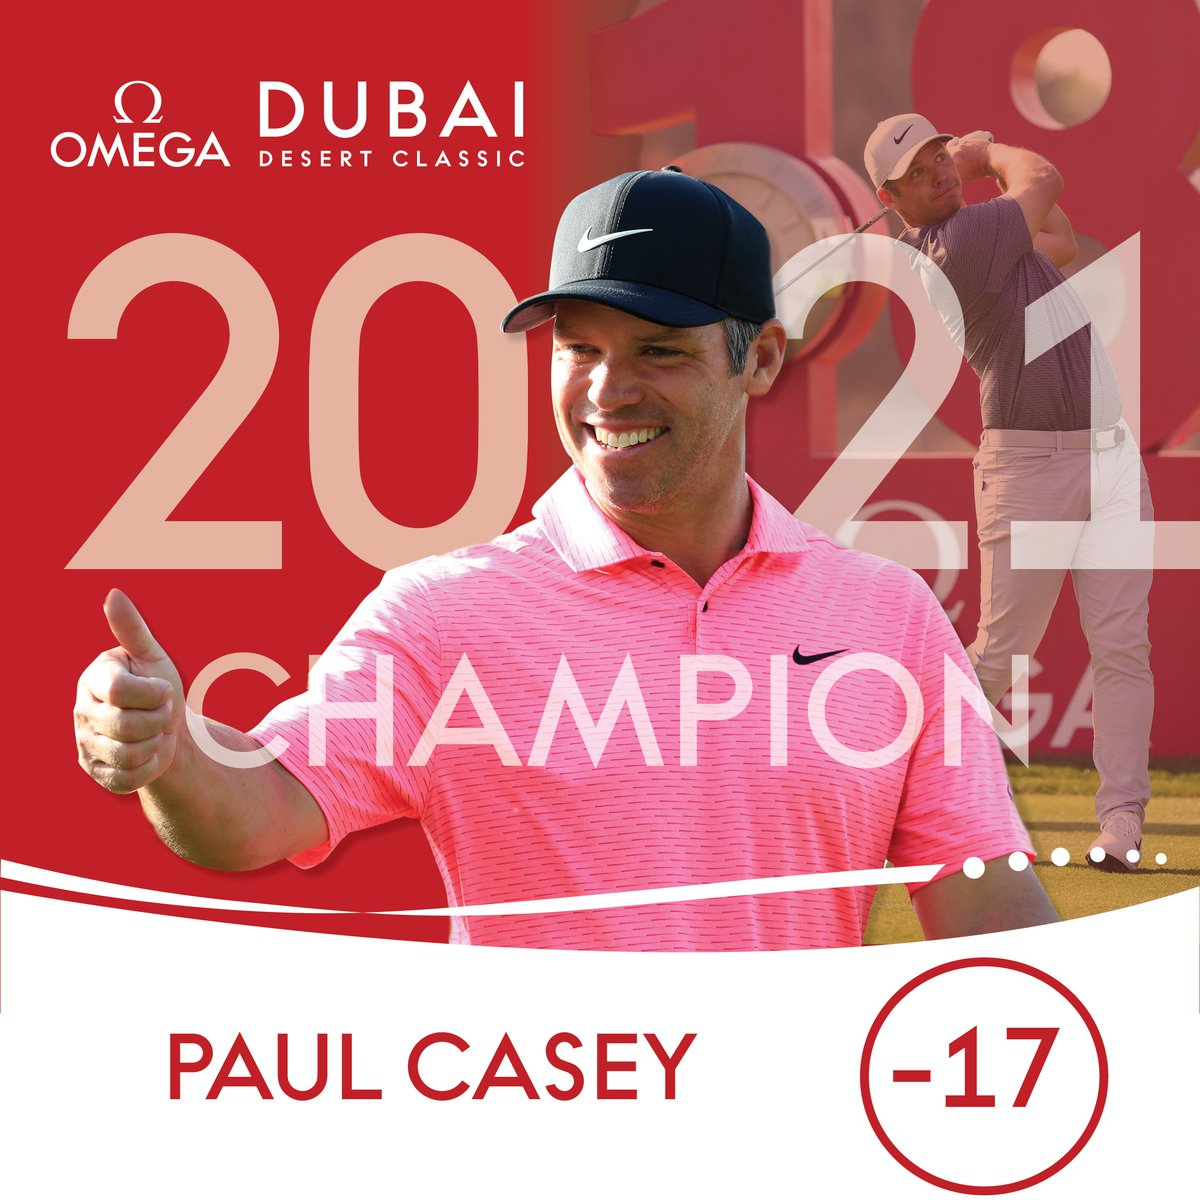 Paul Casey wins the 2021 #ODDC 🏆  #MadeForGreatness #TimeToMakeHistory